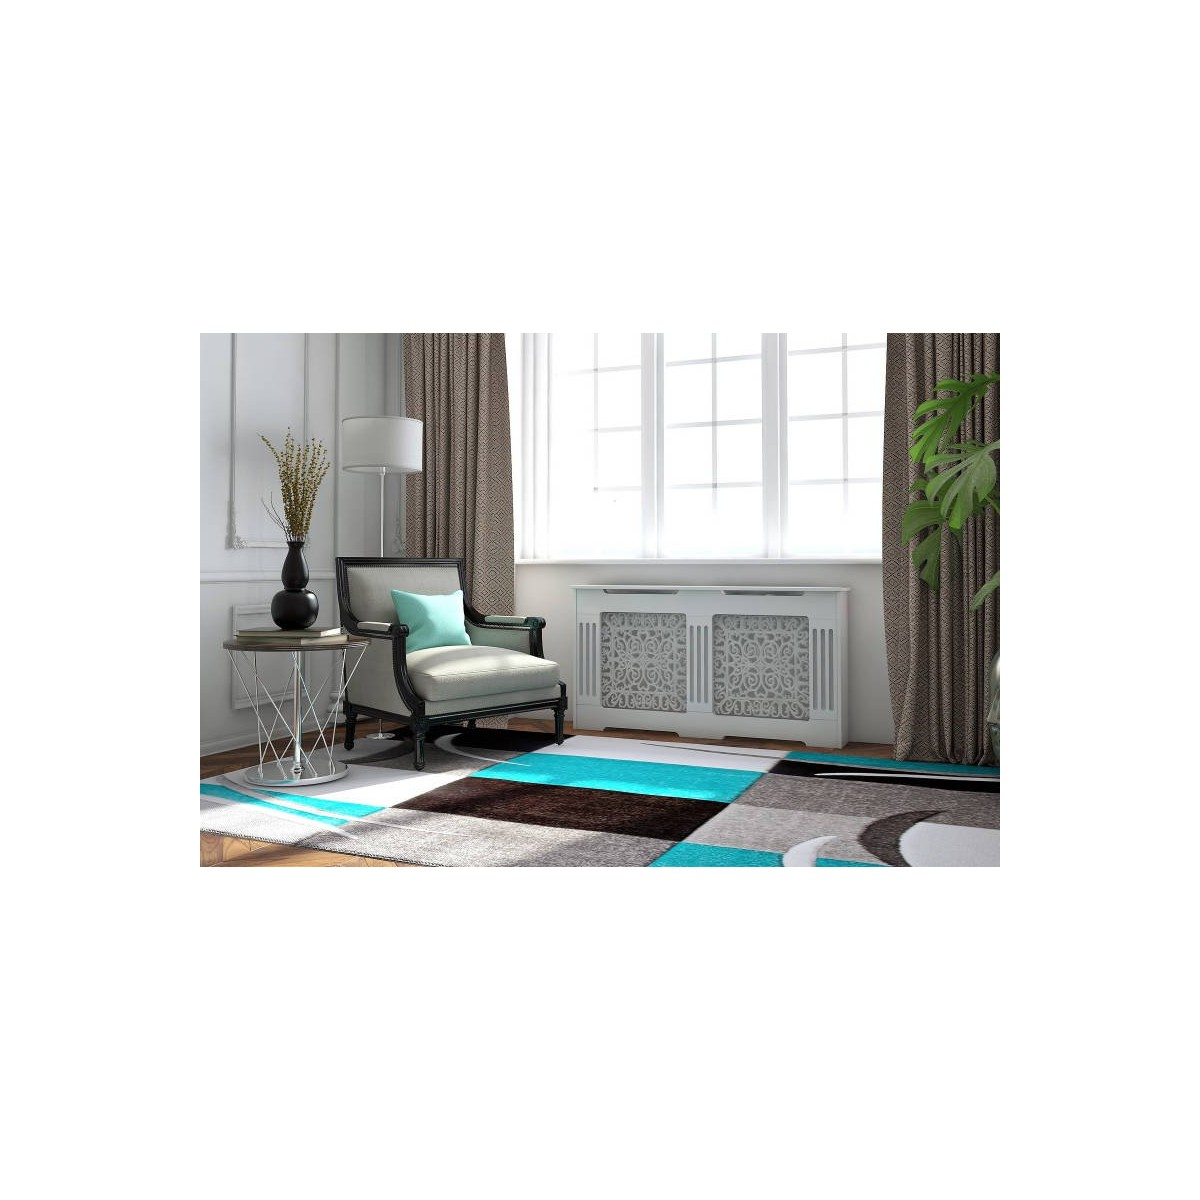 living room rug modern and frieze 200 x 280 cm modern friesland superverso grey turquoise amp story 4709